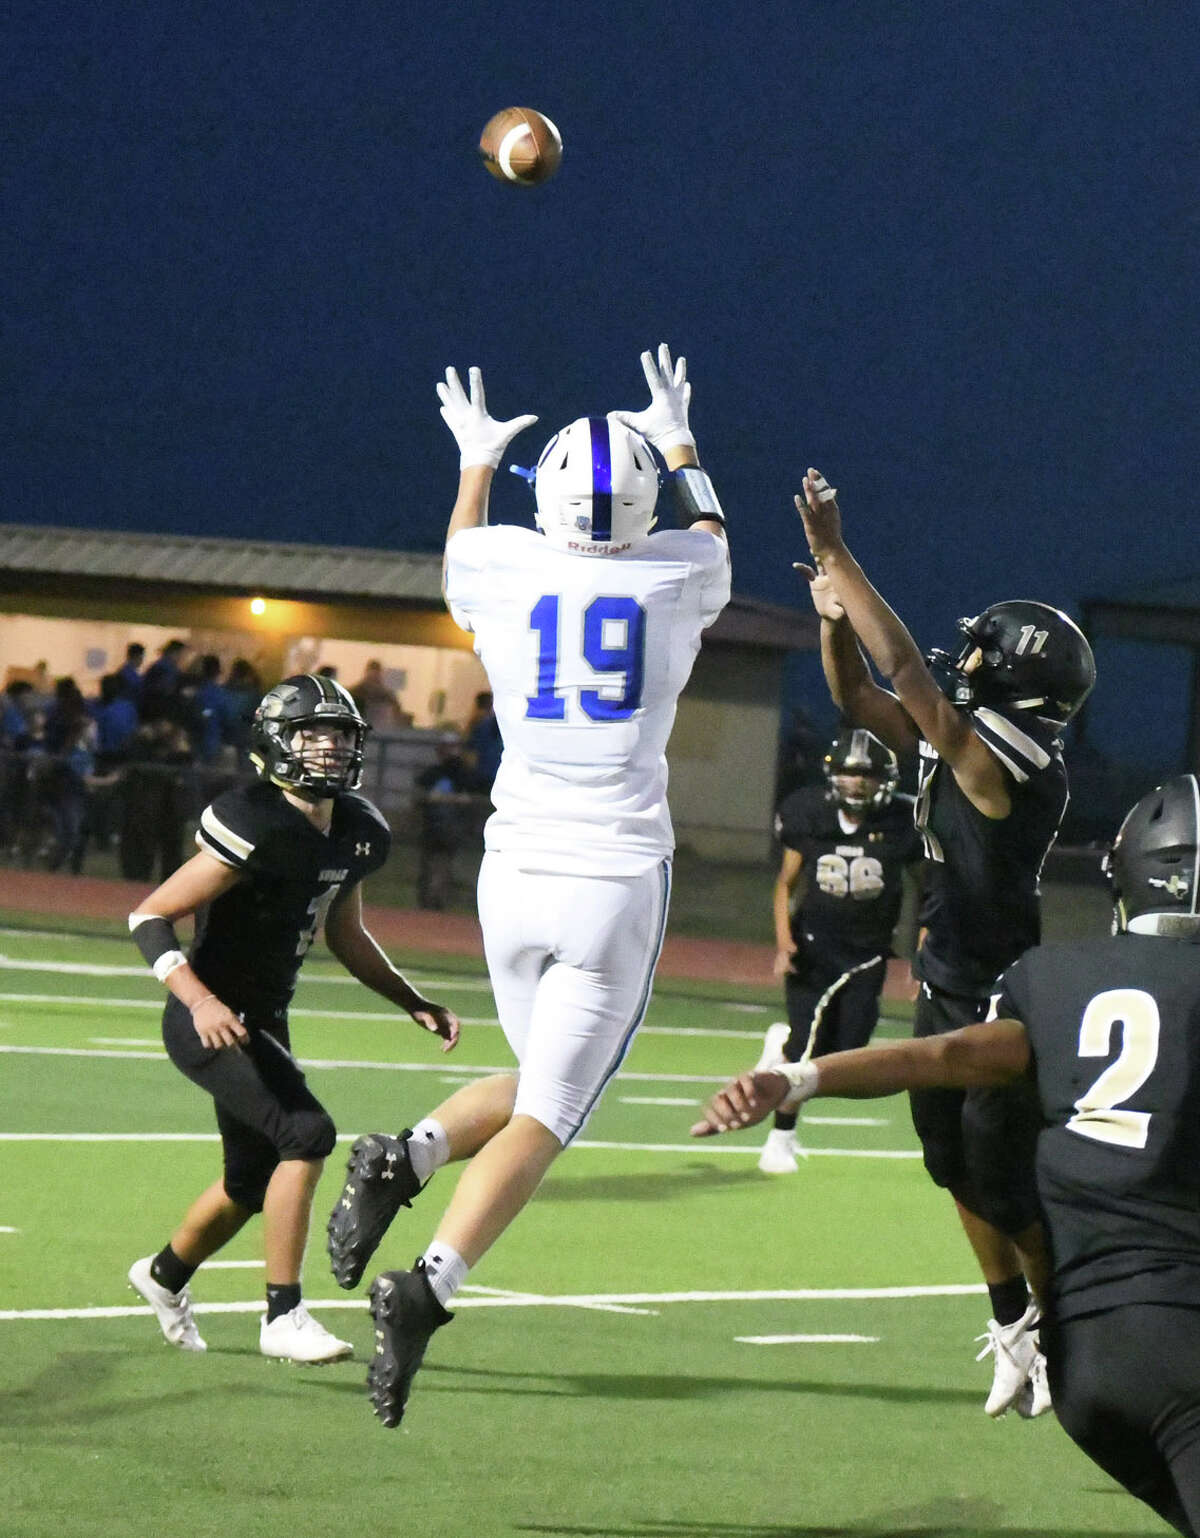 Olton junior wide receiver, Brennon Huguley, goes up for a catch between two Sudan defenders, during the third quarter of Fridays contest with the Sudan Hornets in their season-opener